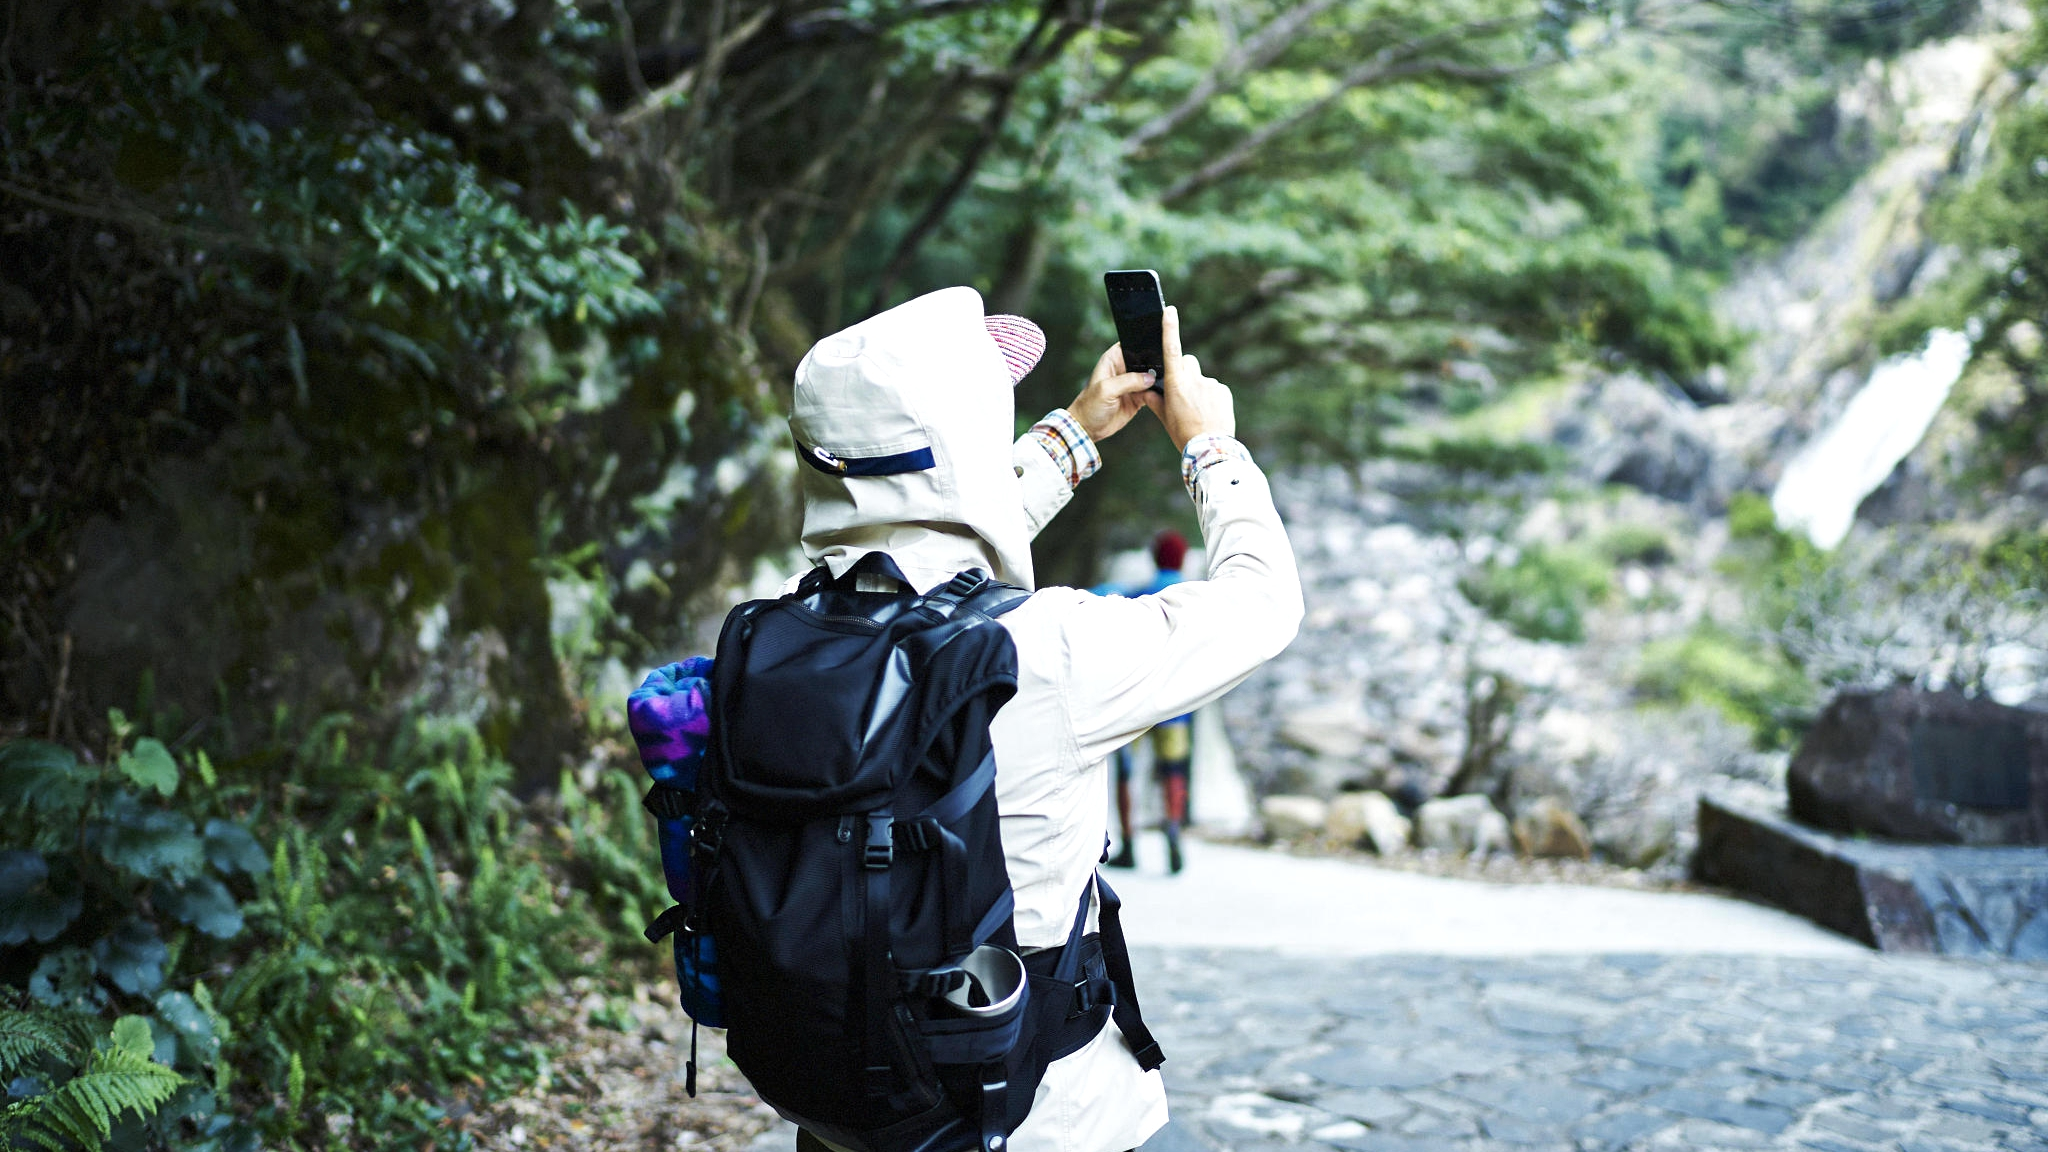 Chinese tourists keen on short-distance travel, focus on safety: report